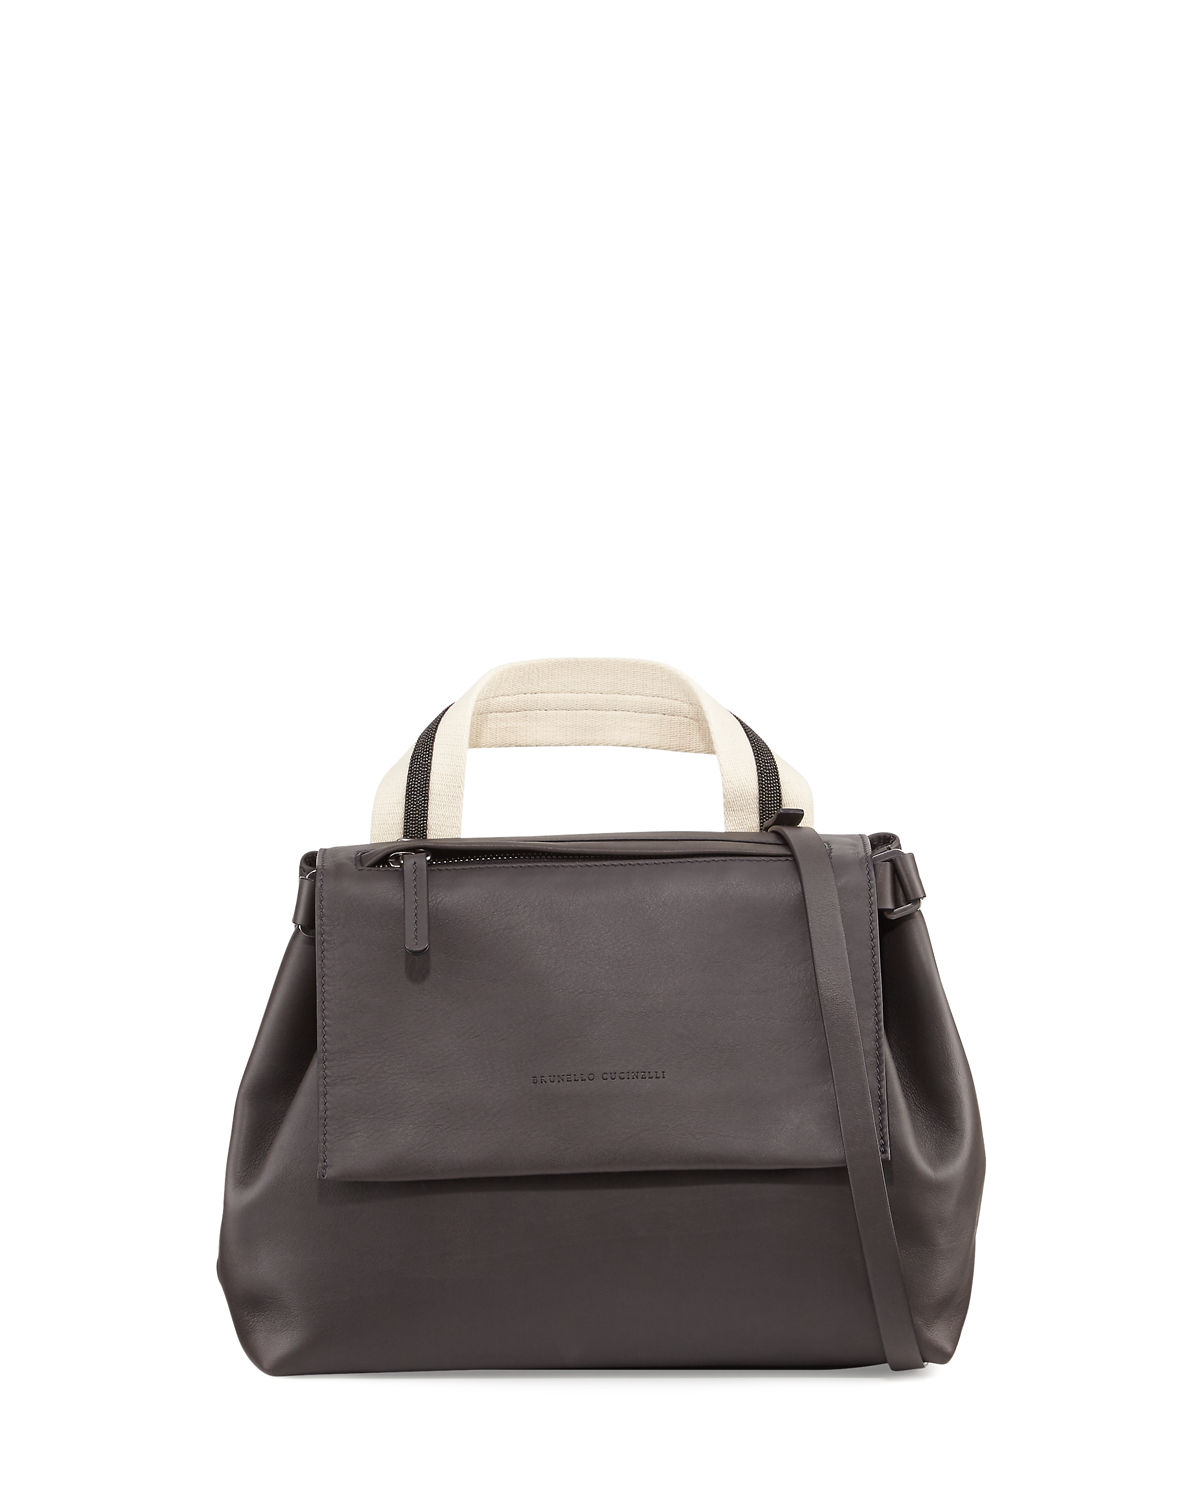 Medium Leather Satchel Bag